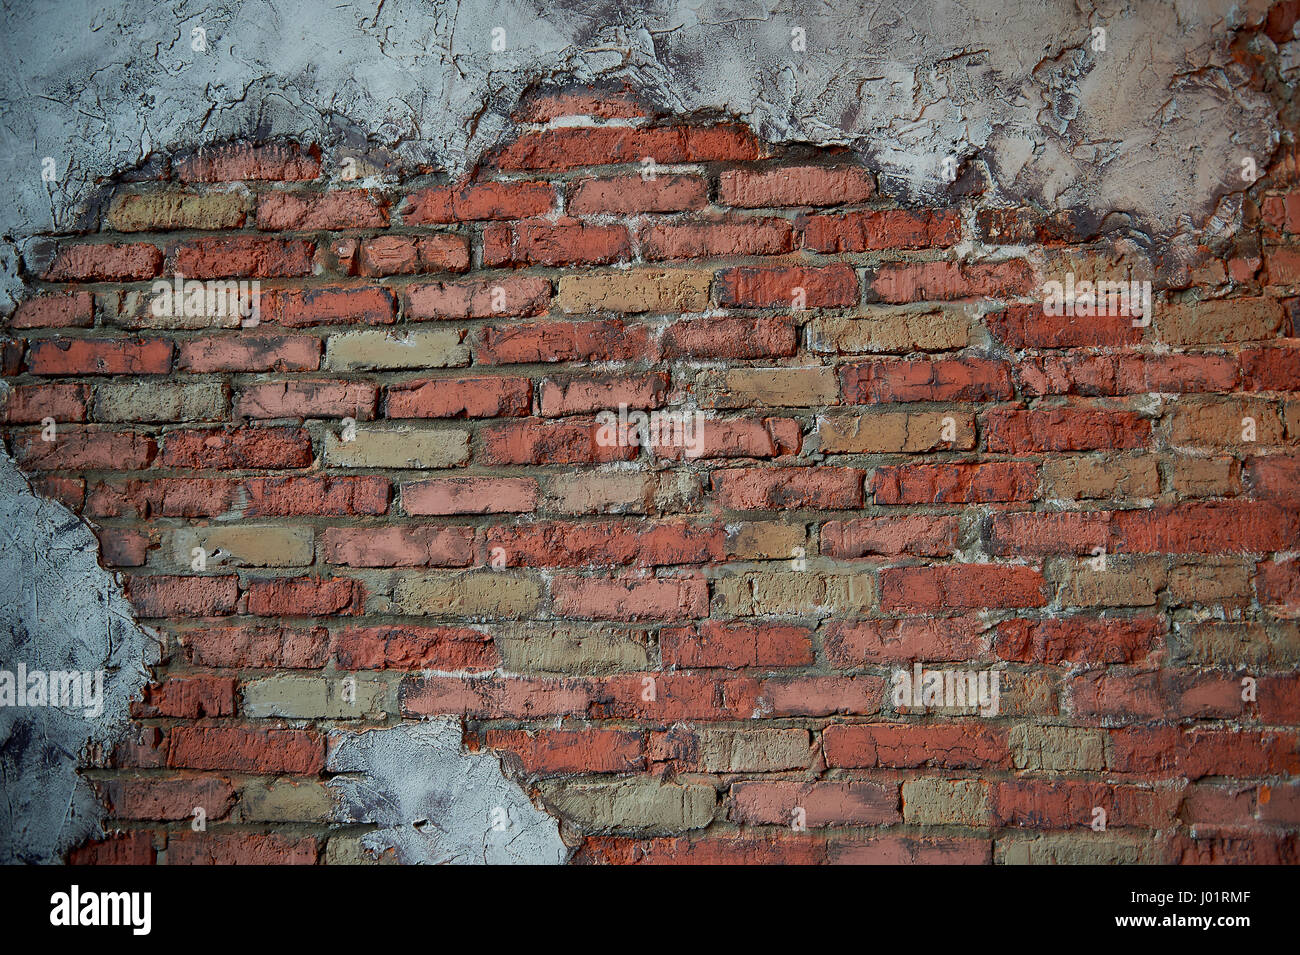 Walls of old red brick  The wall texture  With pieces